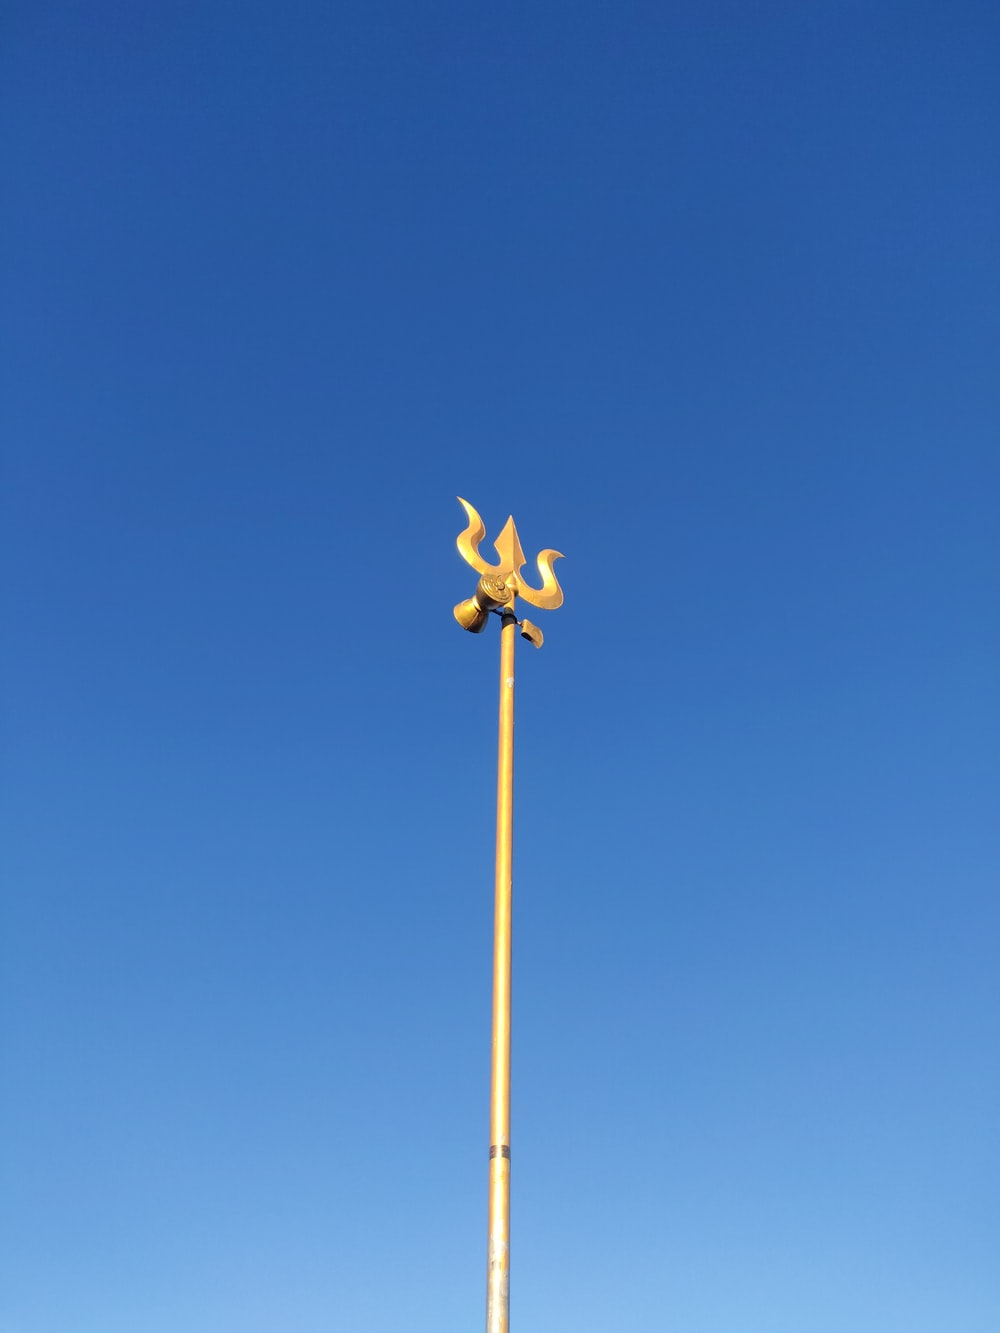 yellow and black wind mill under blue sky during daytime